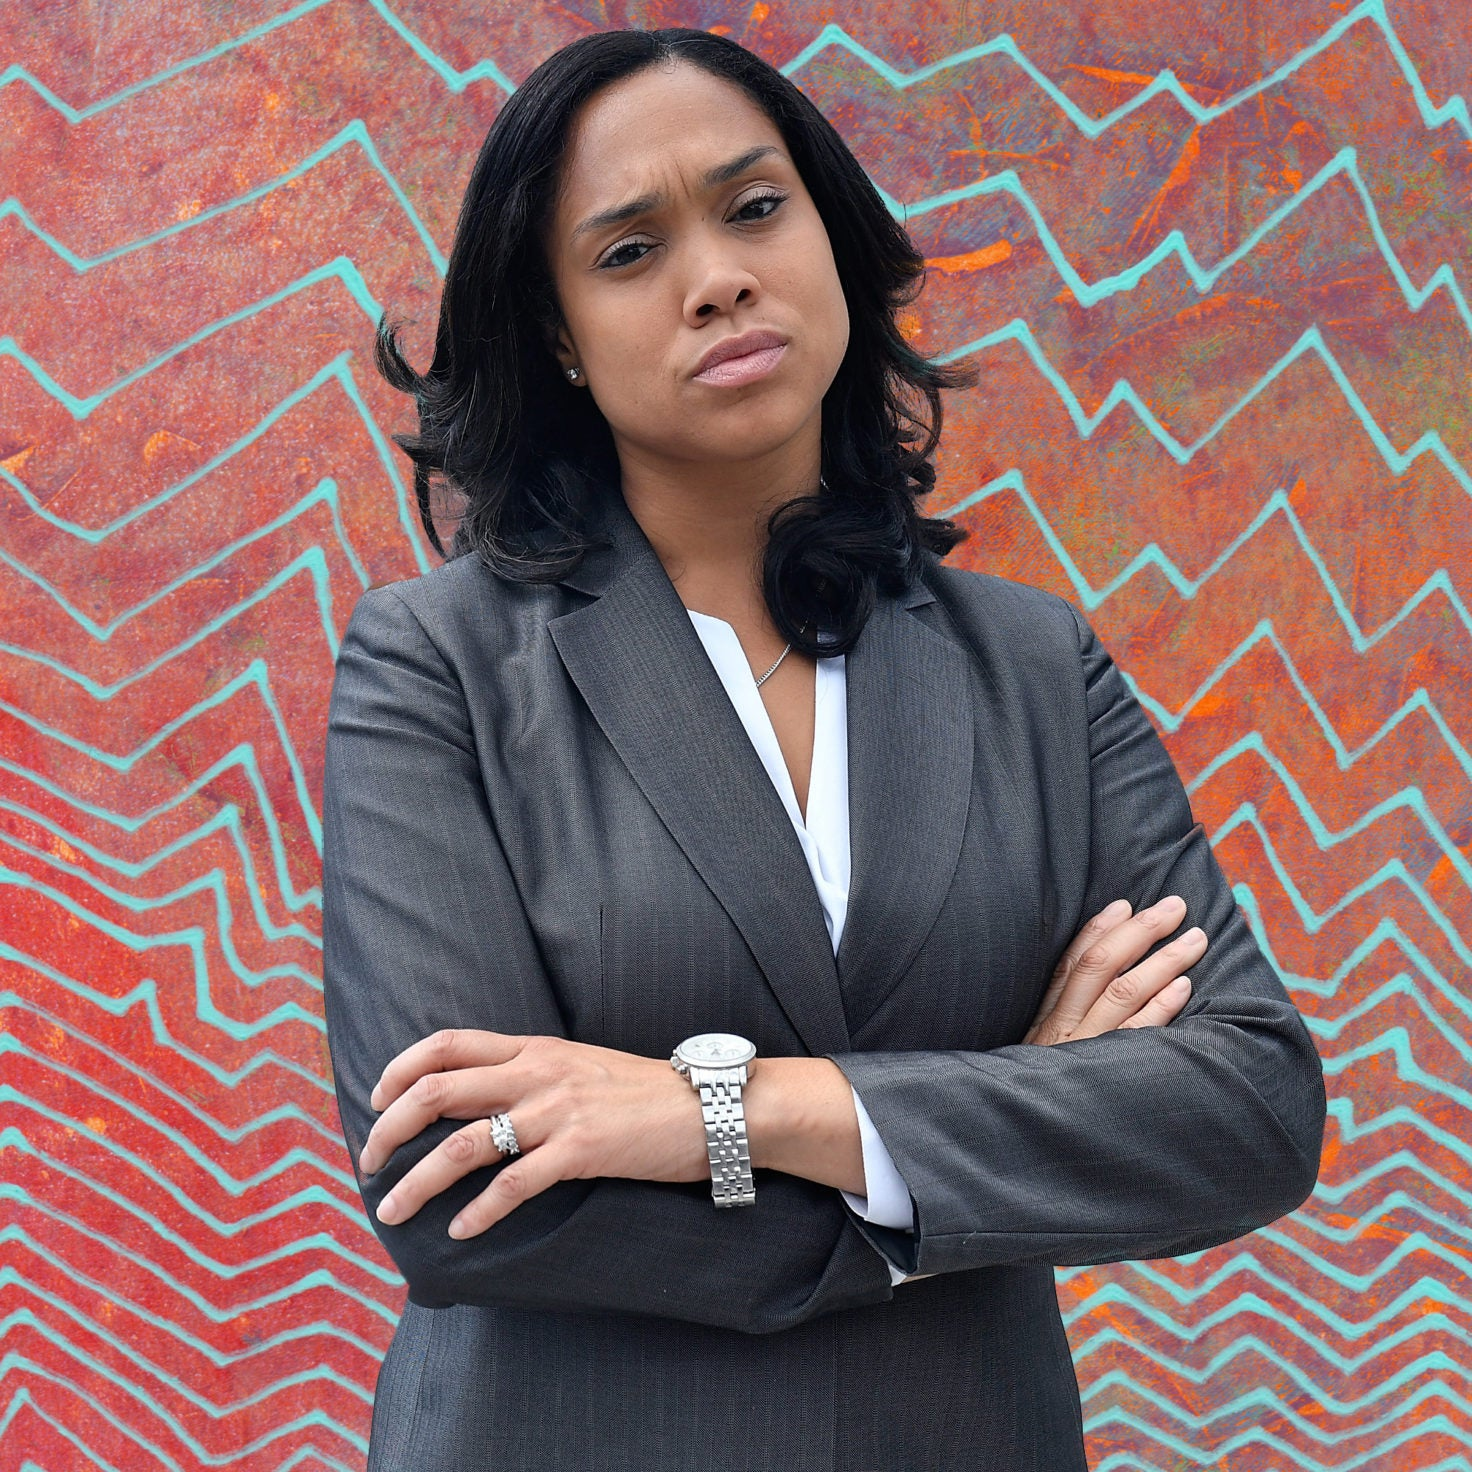 Ladies, Marilyn Mosby Just Dropped Career Advice That Involves Your Love Life And You'll Want To Hear This